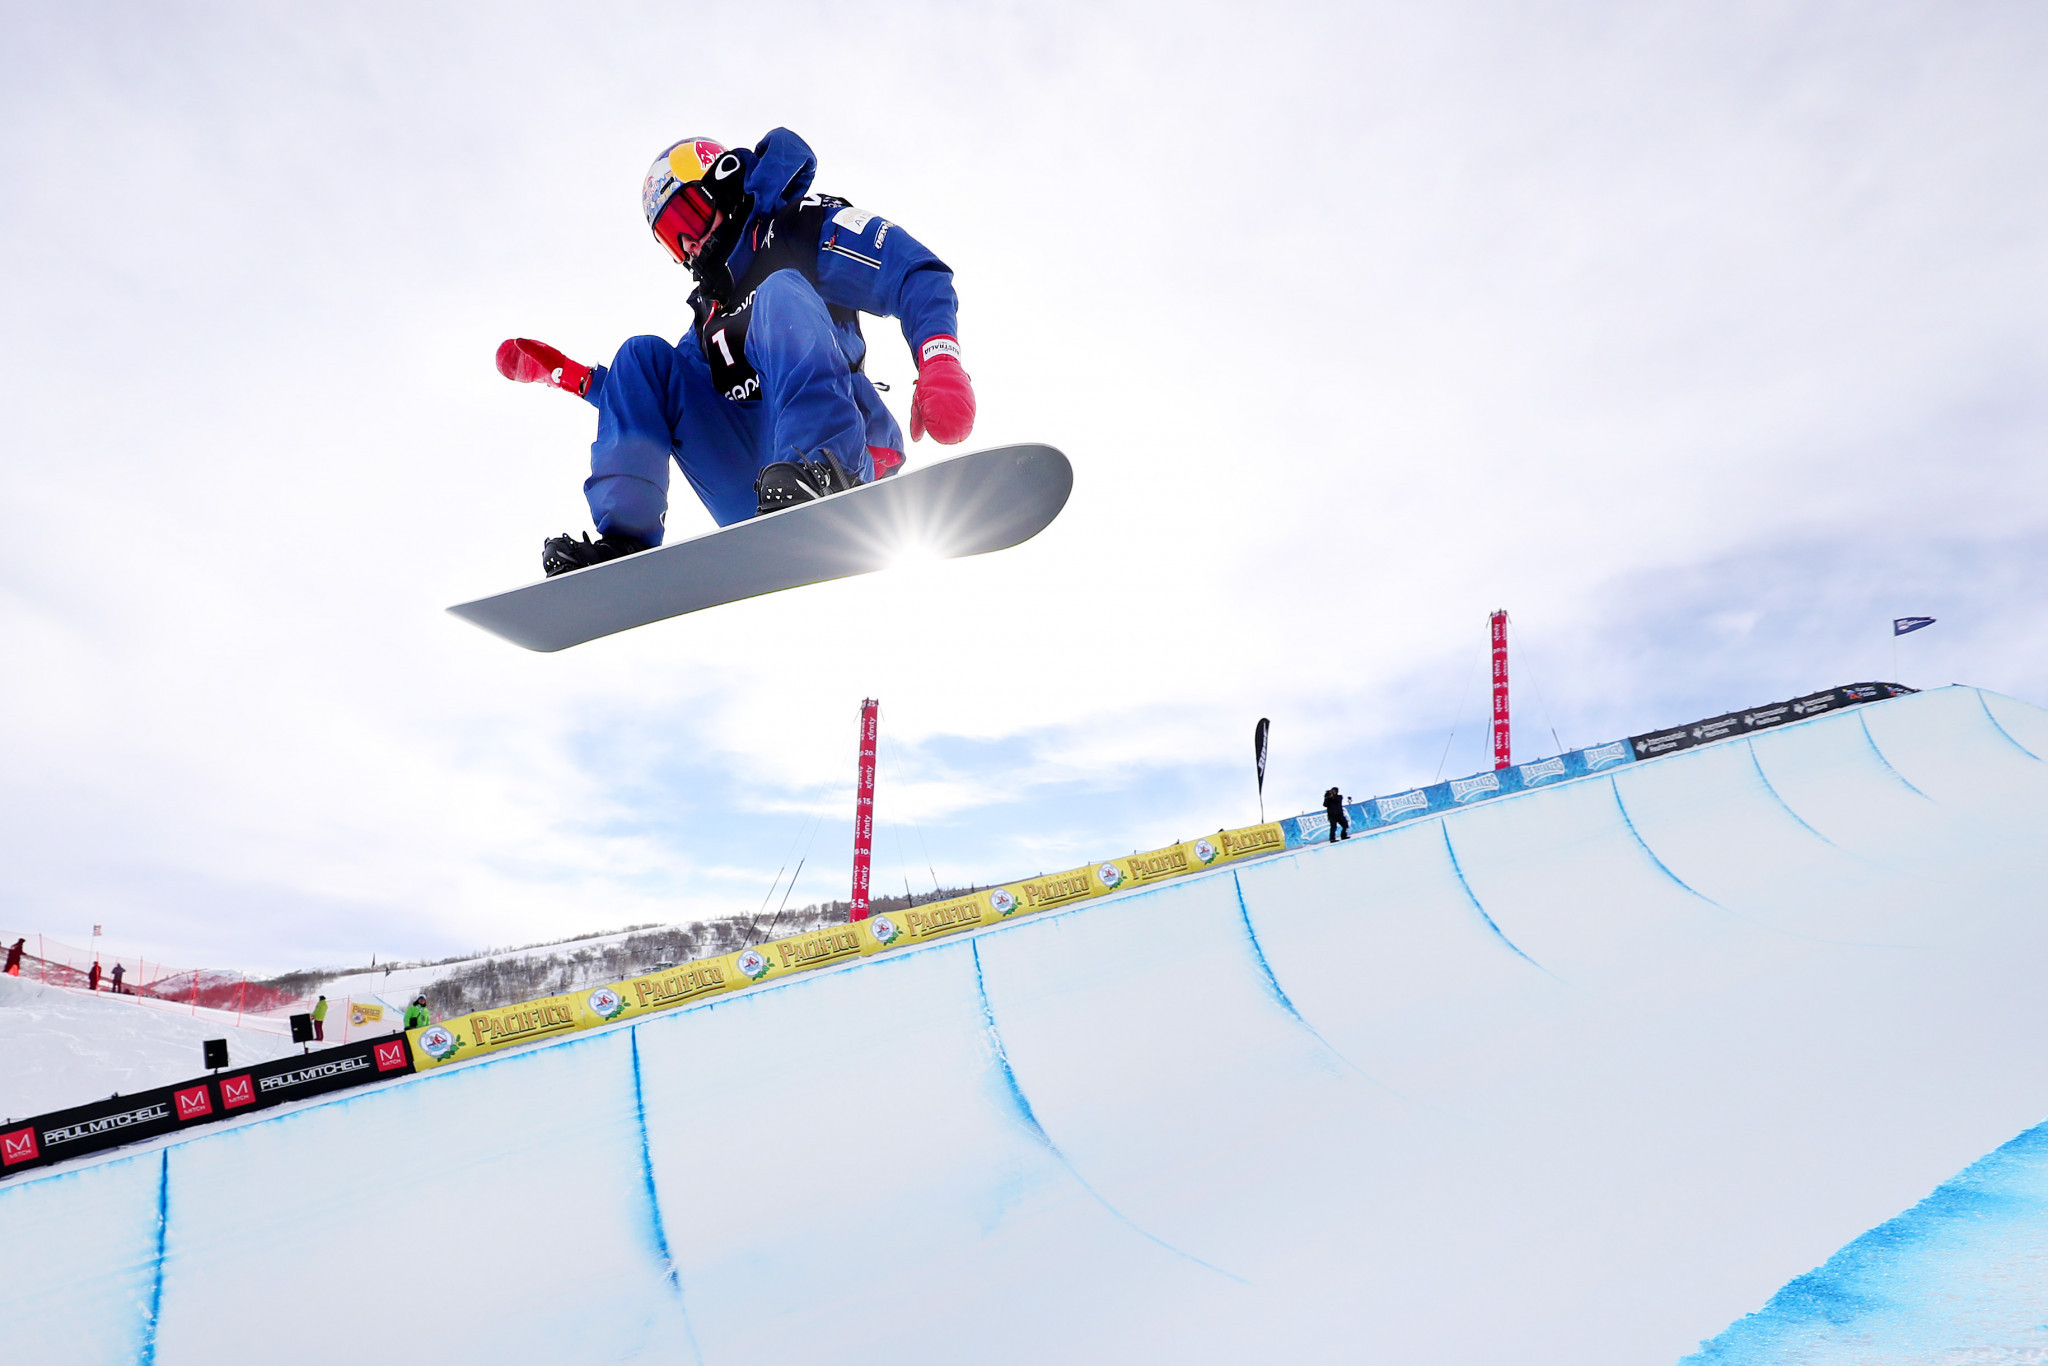 Laax to stage first Snowboard World Cup halfpipe and slopestyle events of season